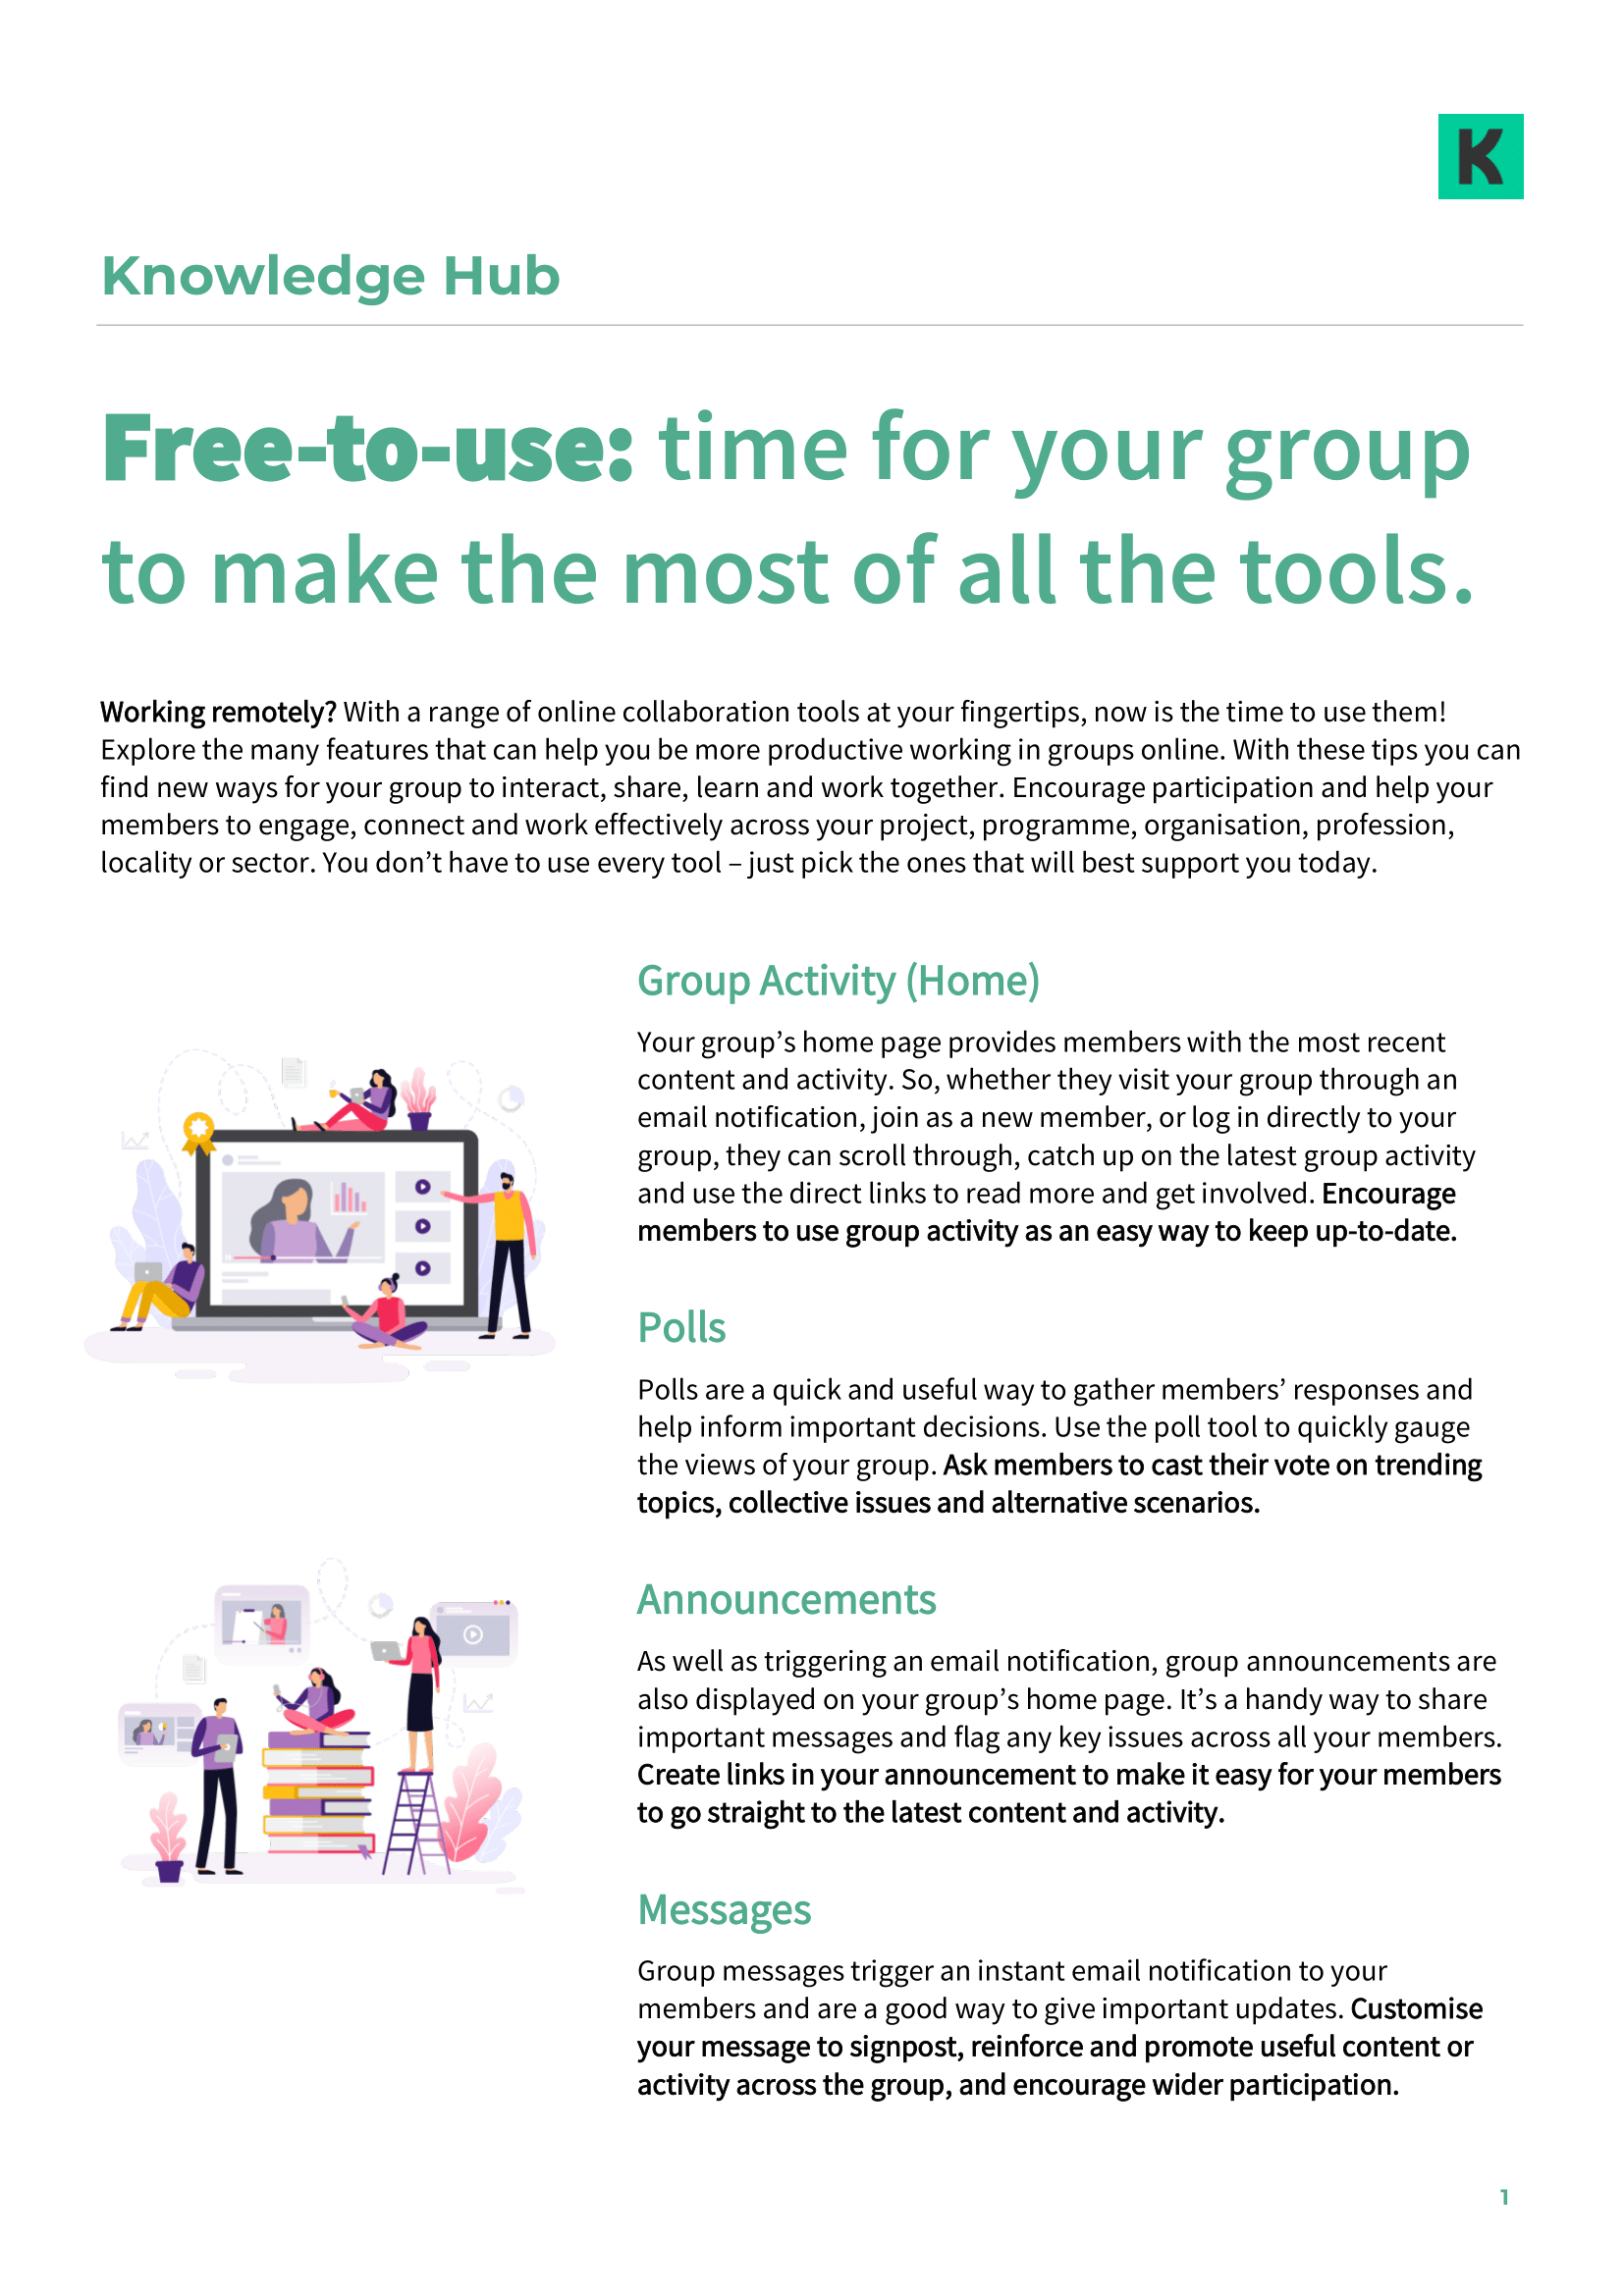 KHub Free online collaboration tools part 1